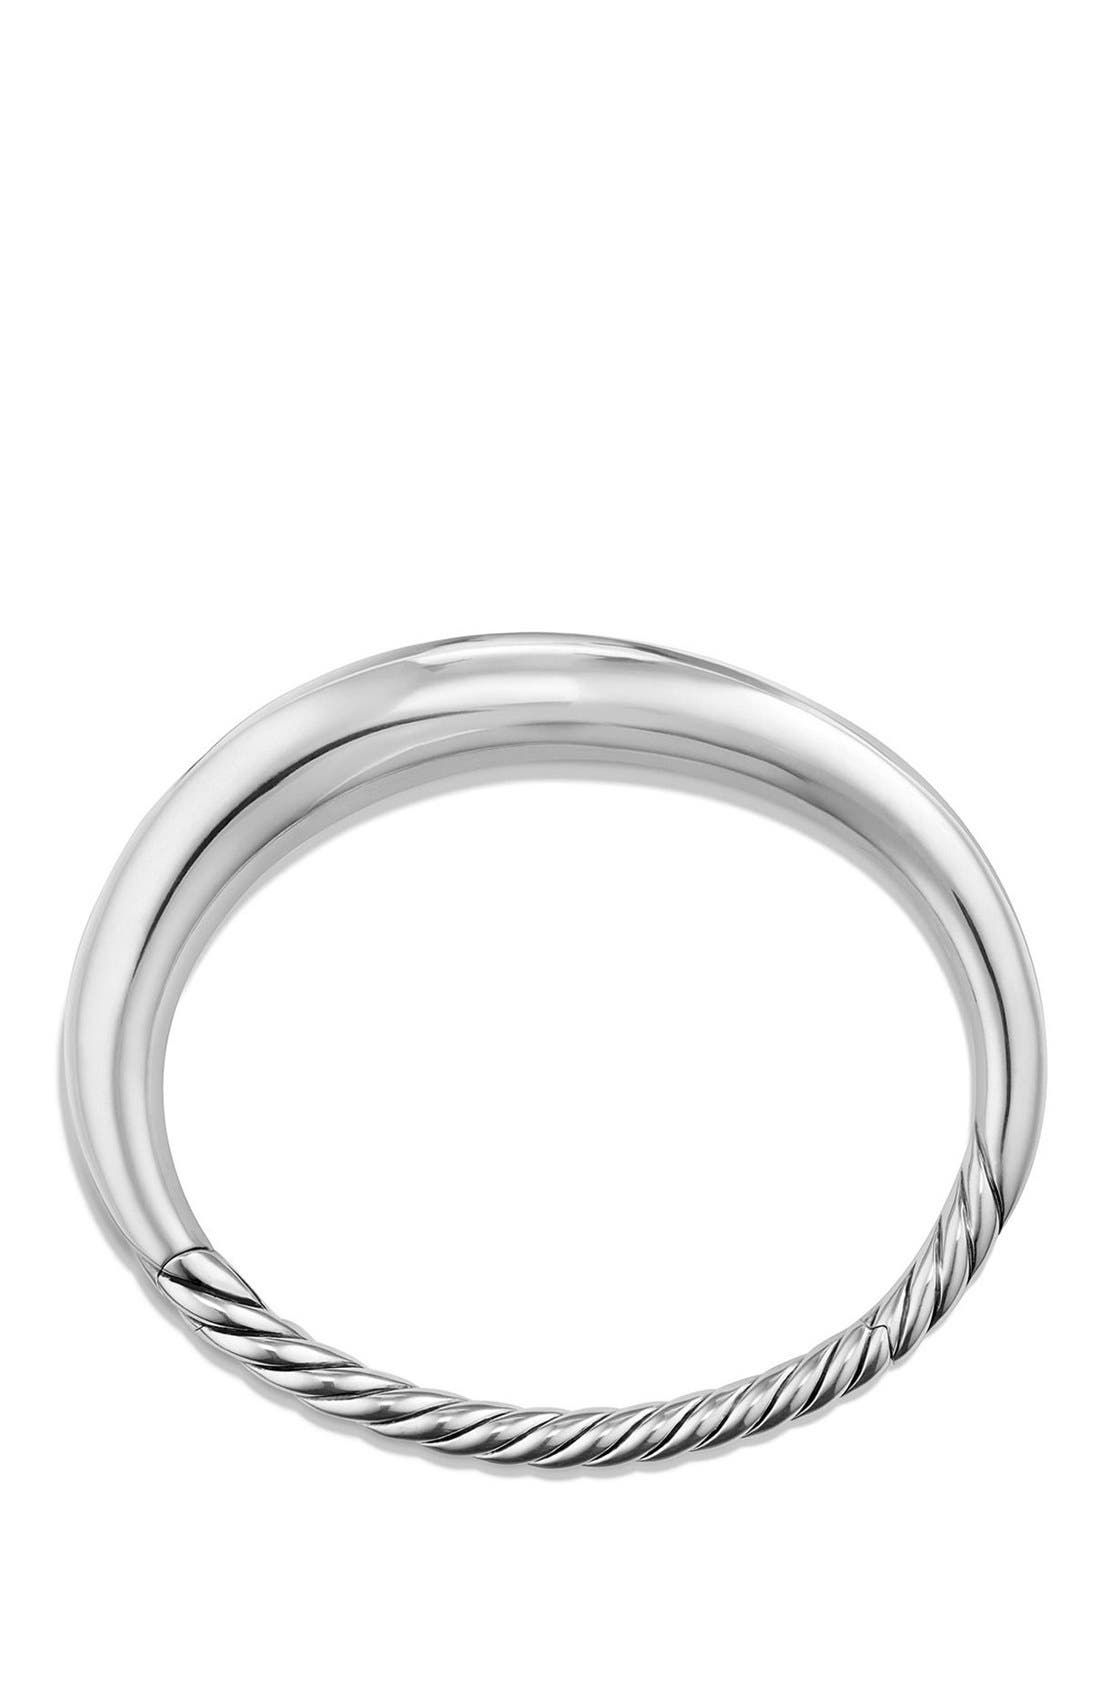 Alternate Image 2  - David Yurman 'Pure Form' Small Sterling Silver Bracelet